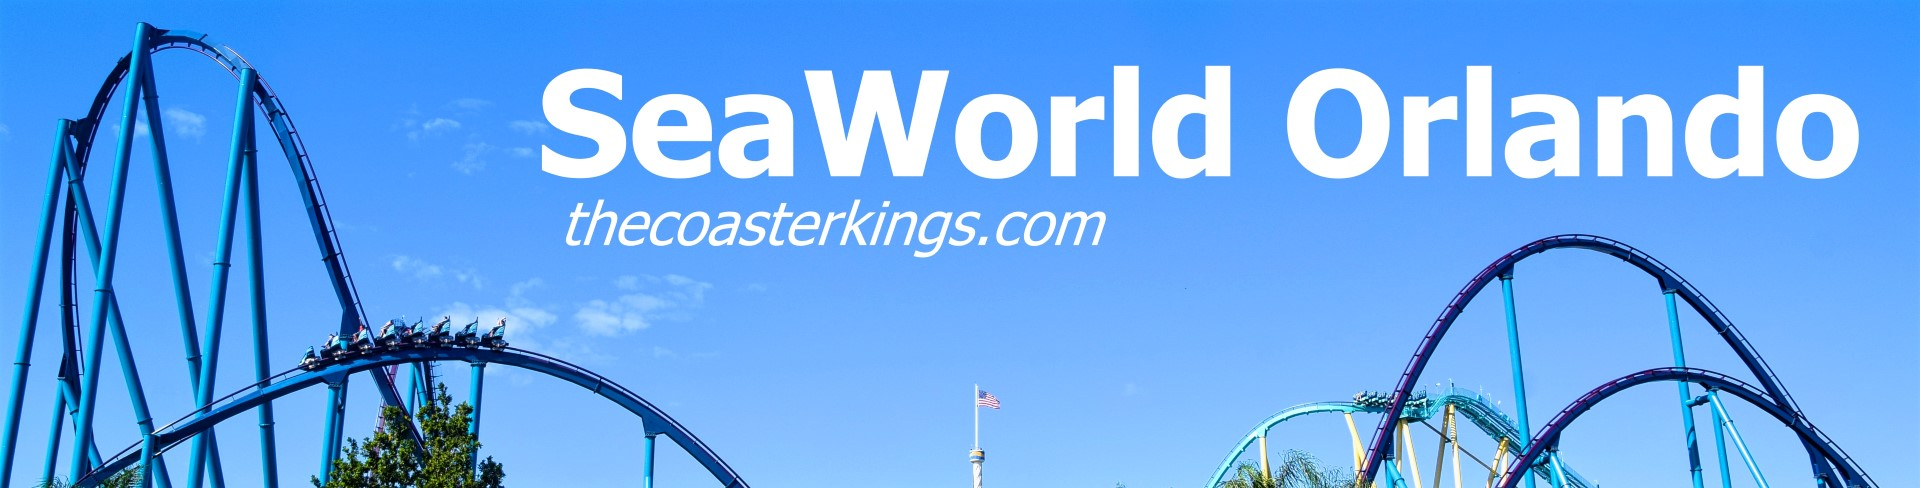 www.thecoasterkings.com